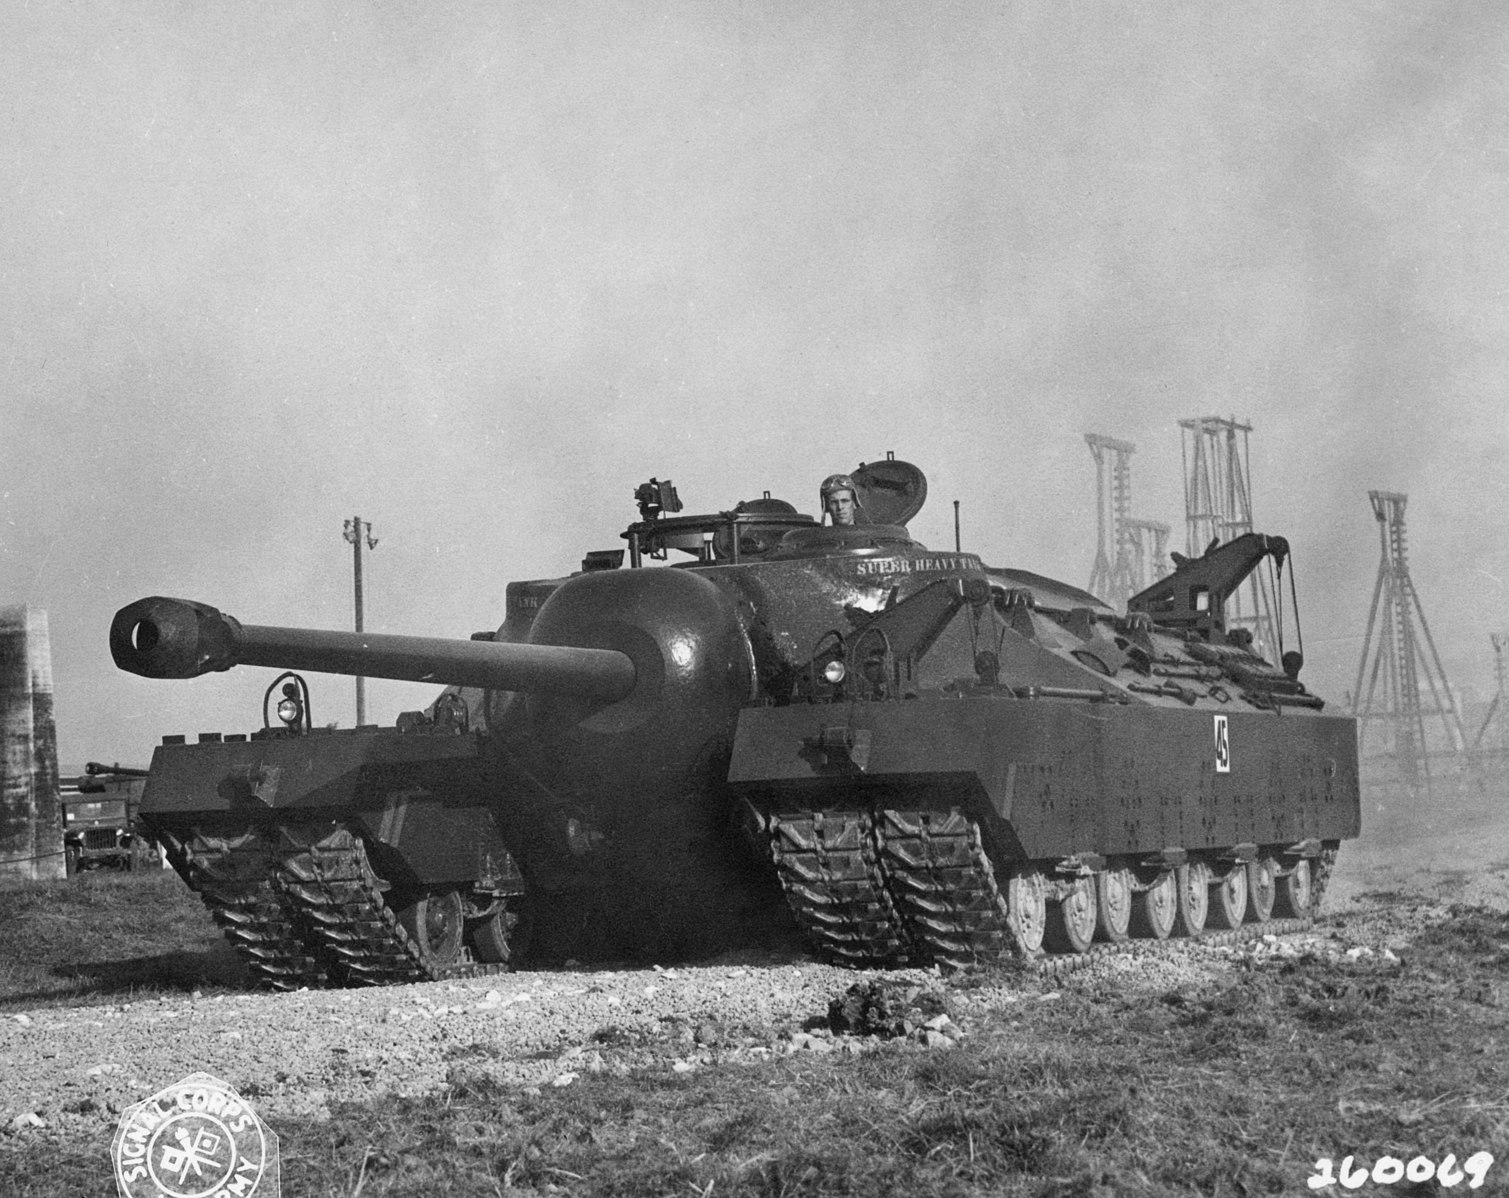 The Army lost a super heavy tank prototype for 27 years